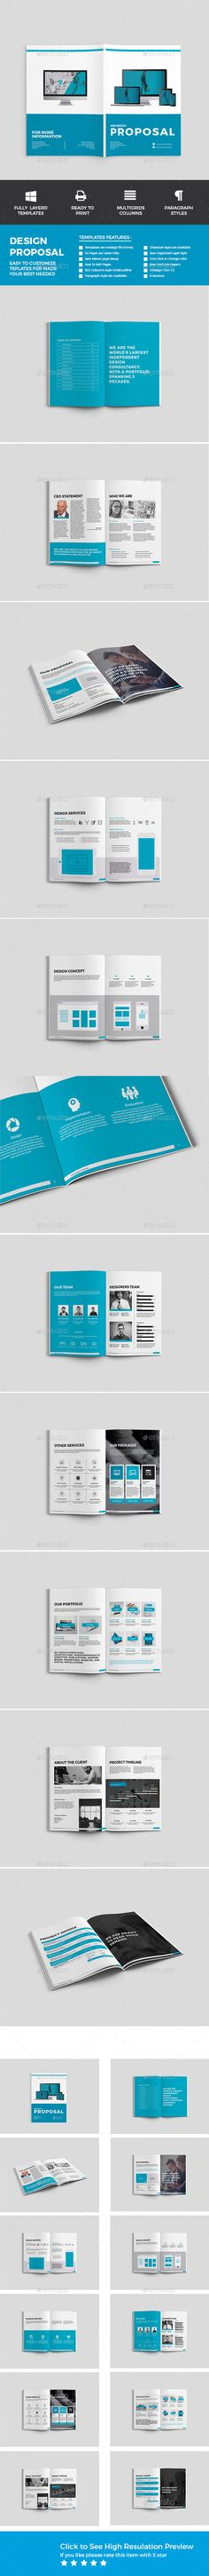 Business Proposal Template g1 - A4 Landscape Business proposal - website proposal template